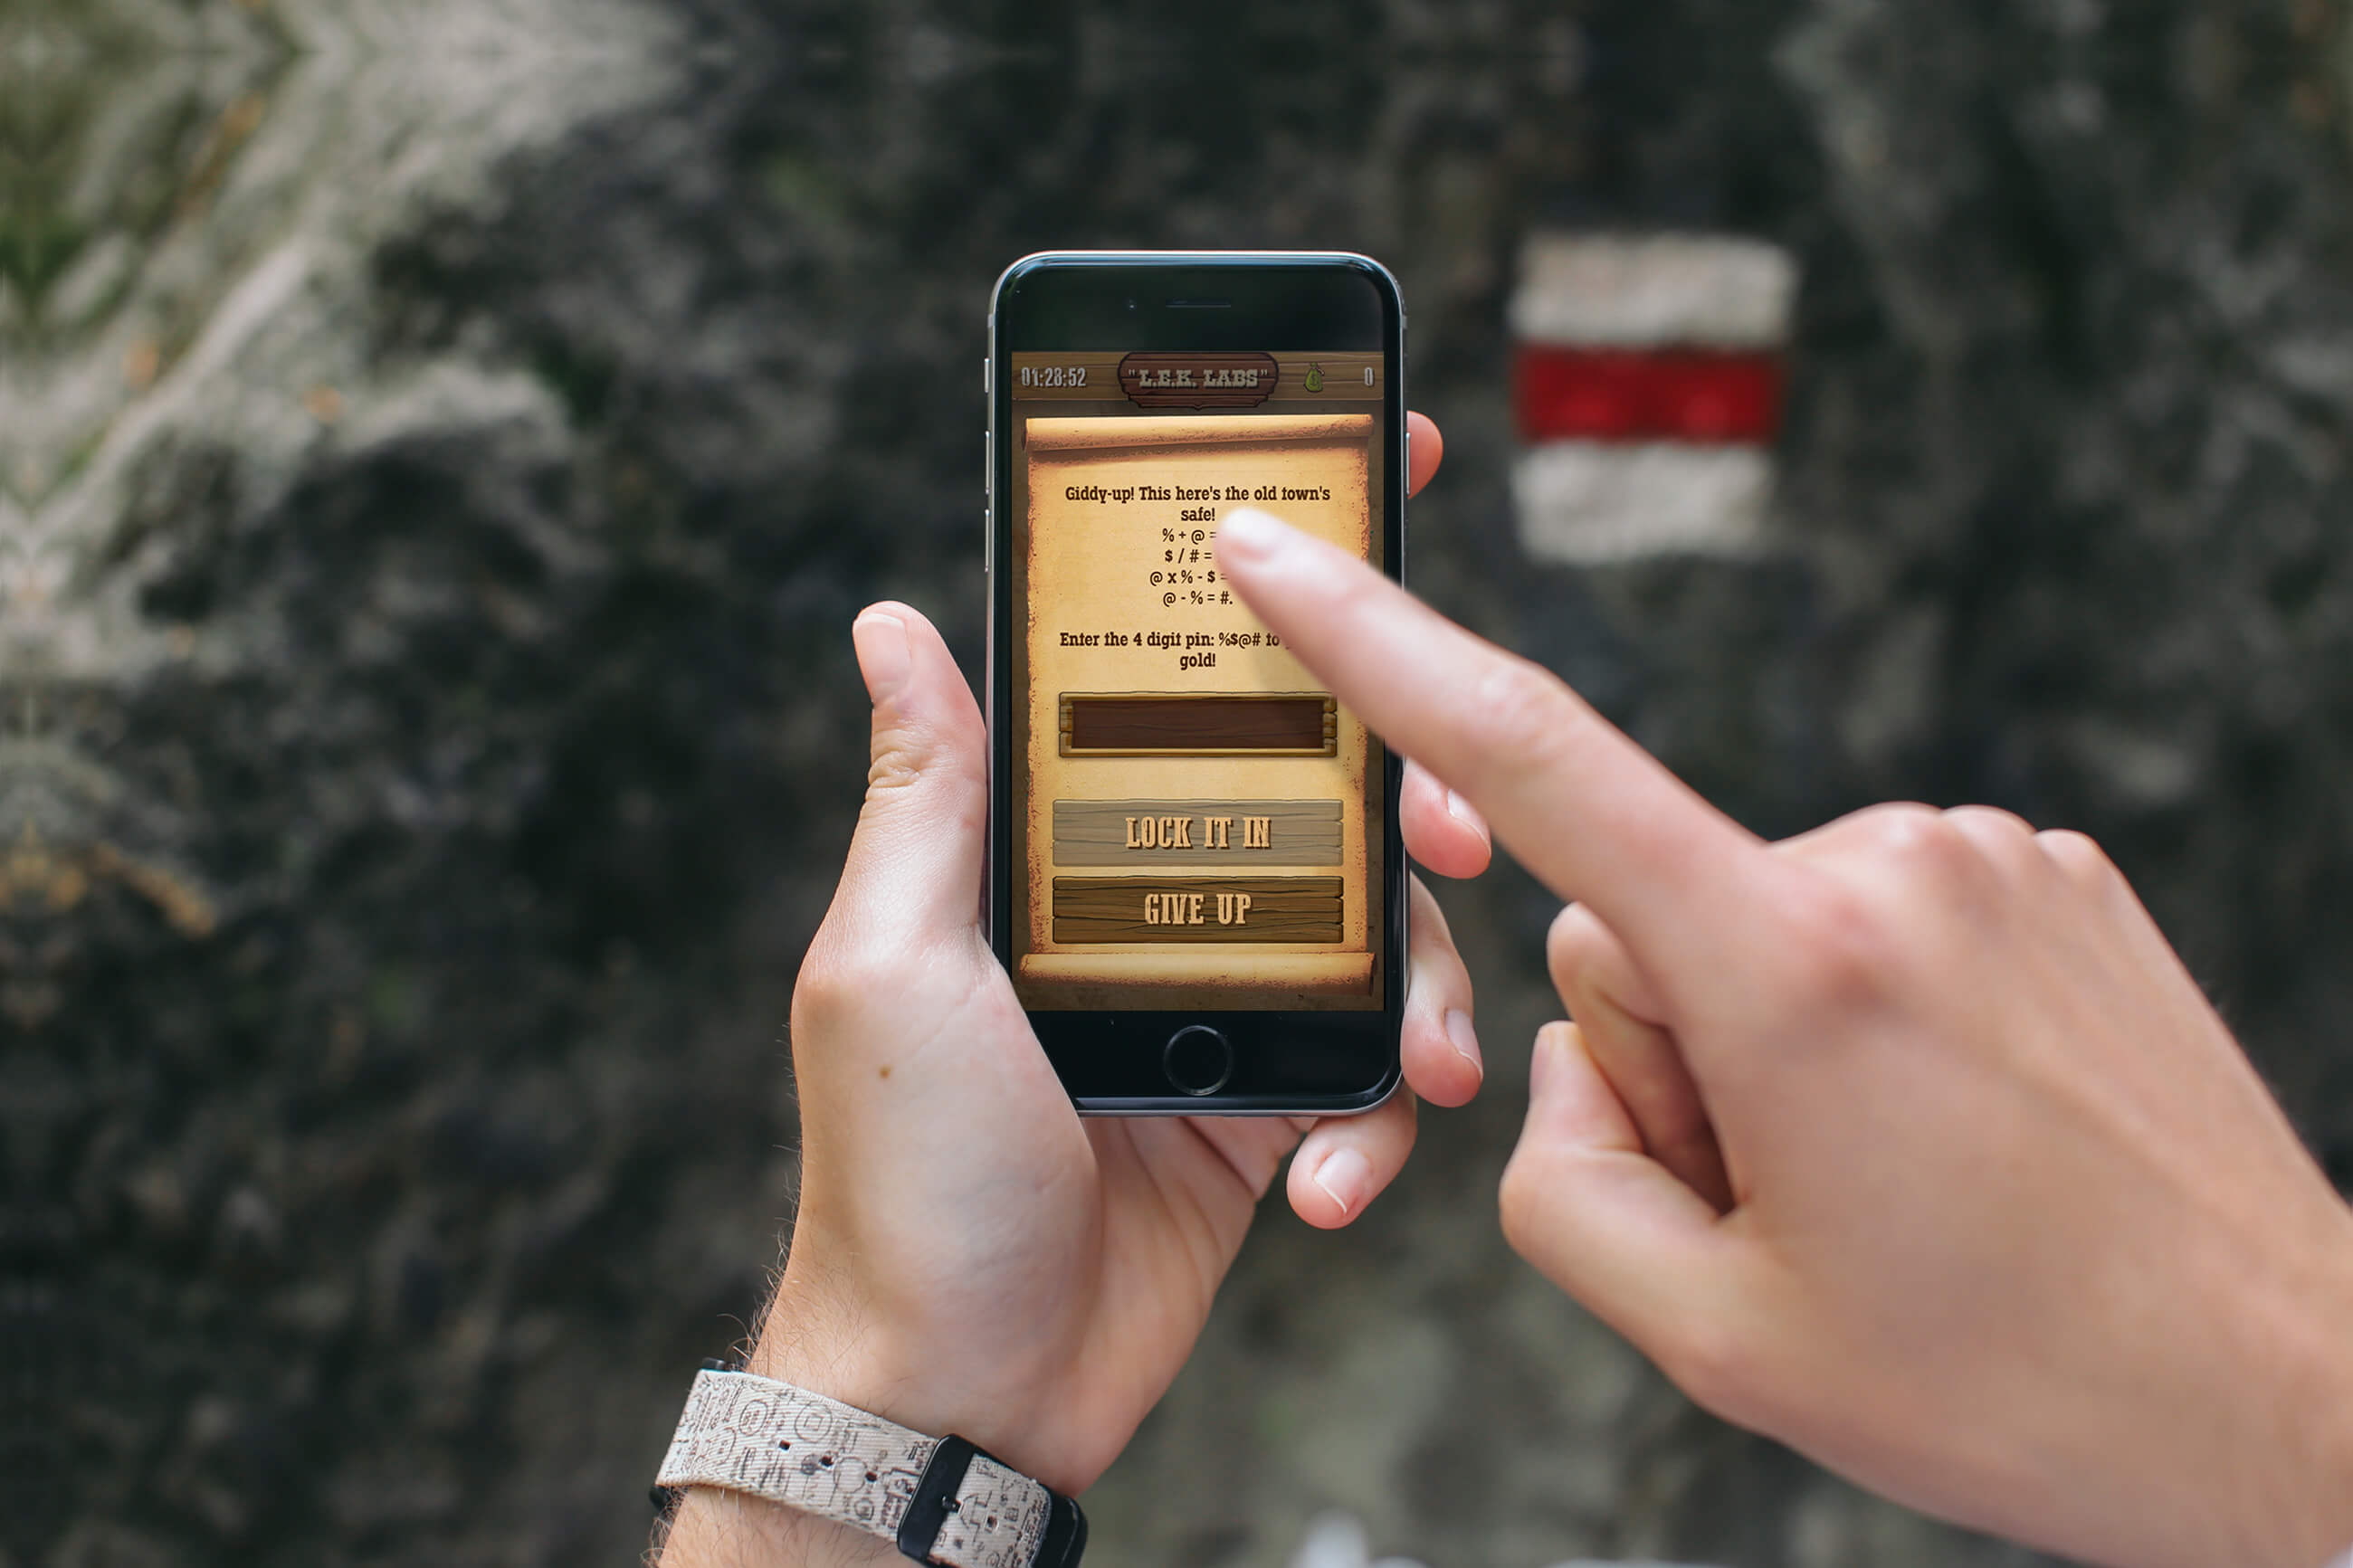 An image of someone holding a phone and touching the LEK Labs Wild West Adventure app